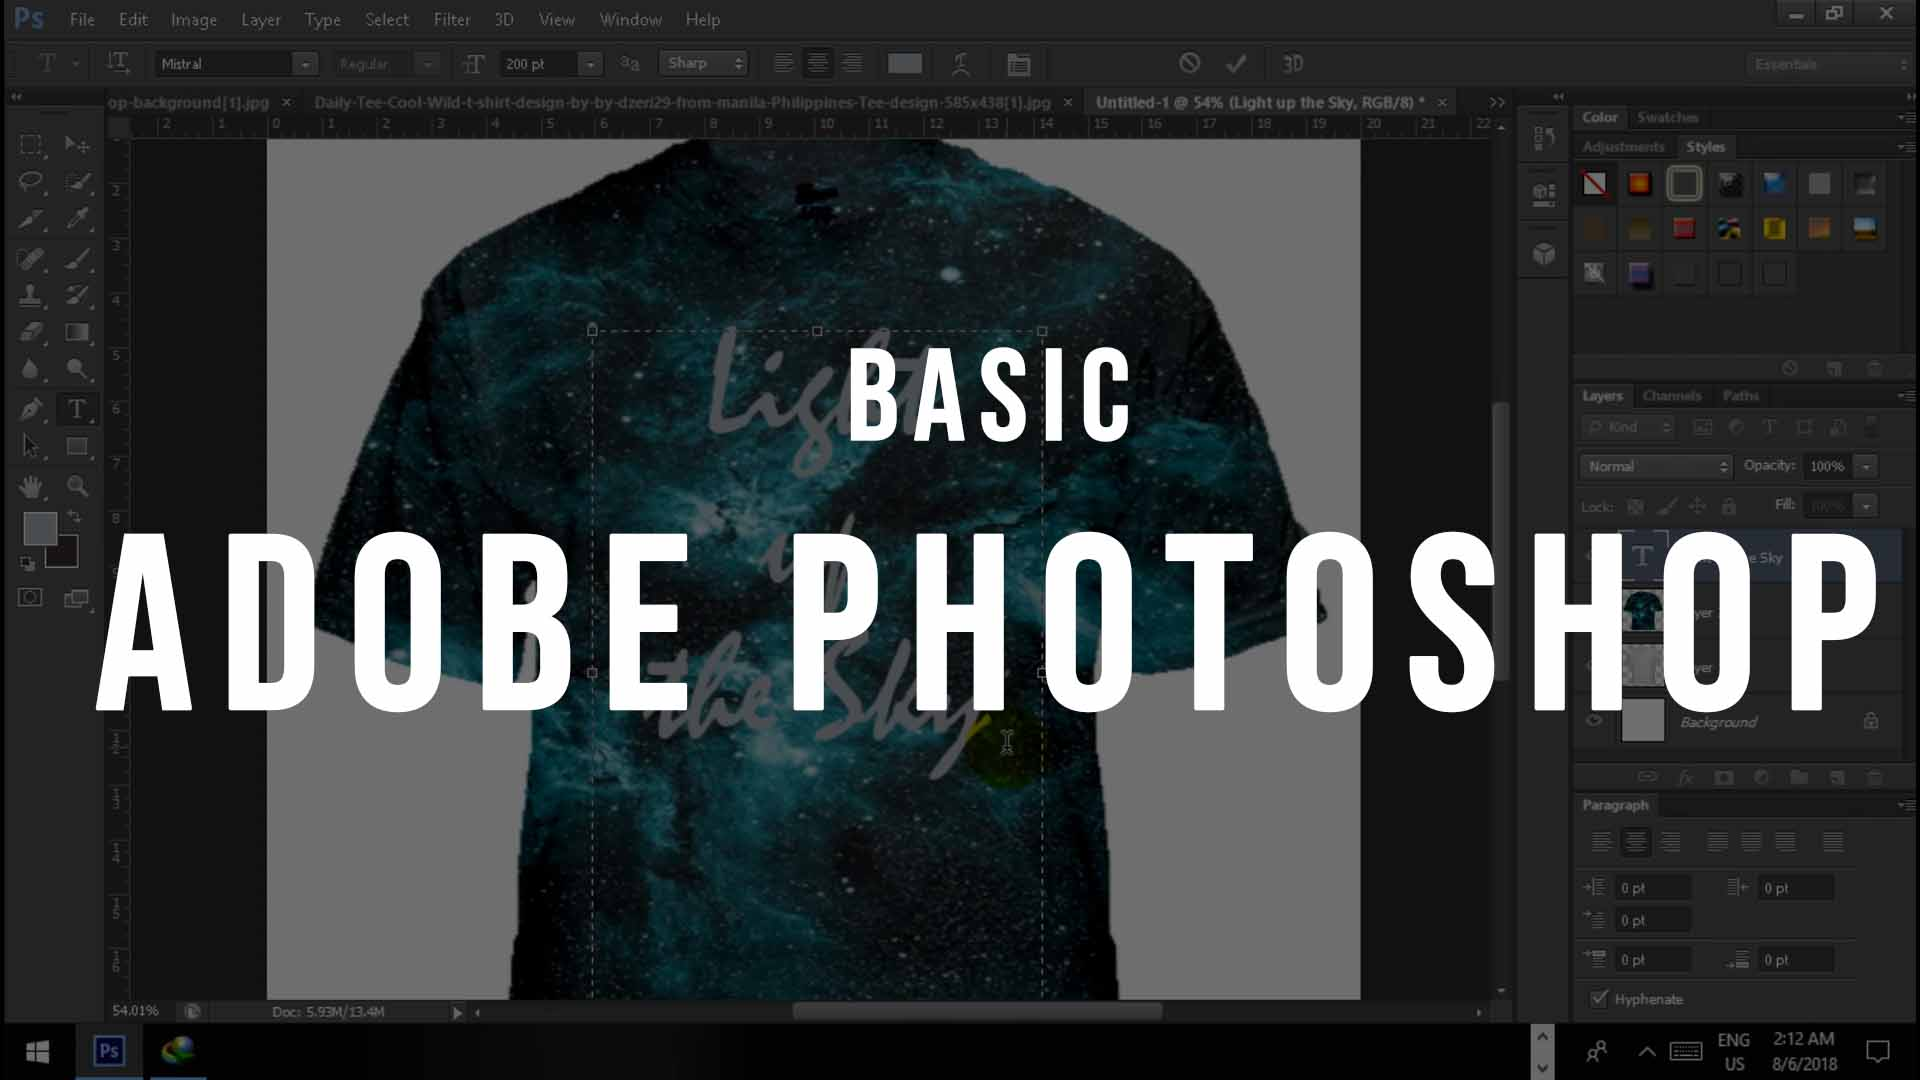 ADobe-Photoshop-1-1.jpg